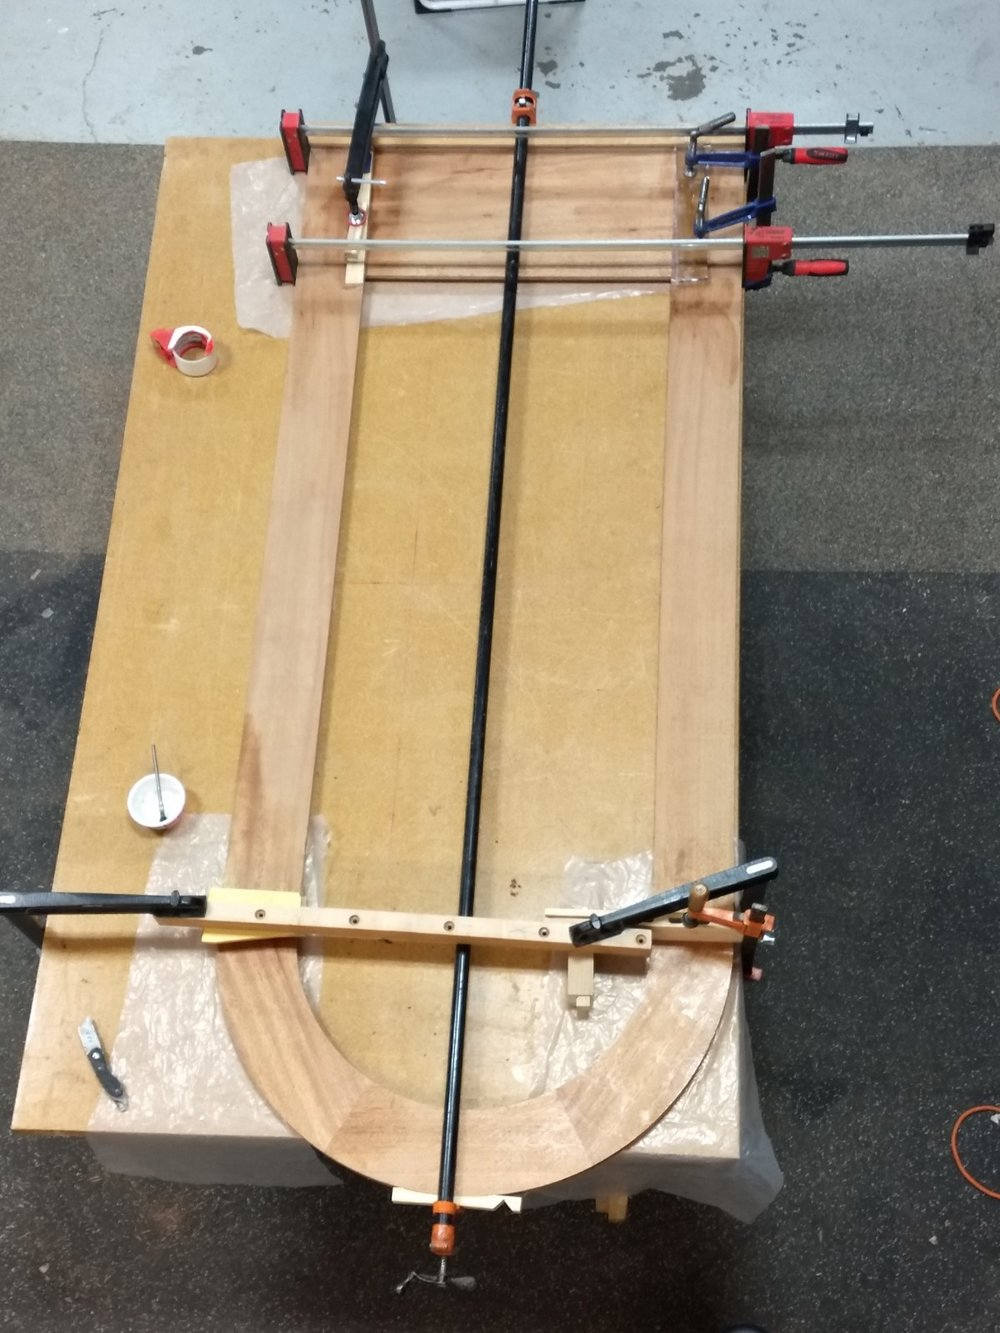 Glued and clamped door